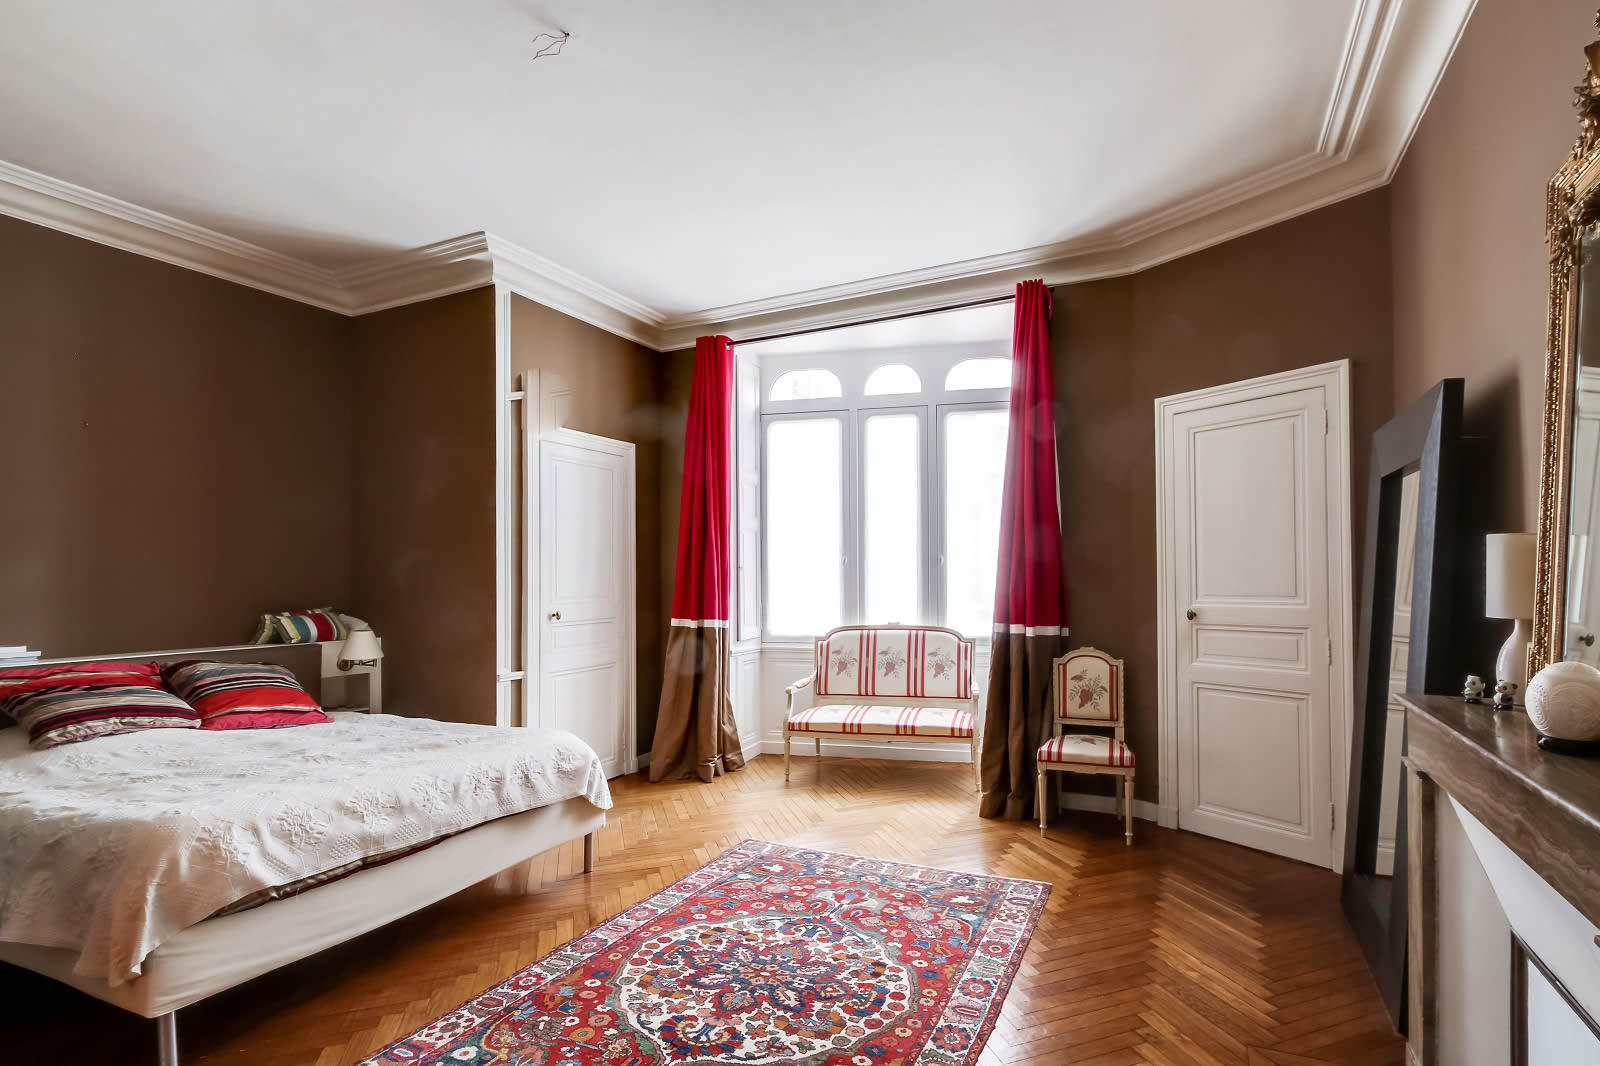 hotel-particulier-a-vendre-5-chambres-parquet-cheminees